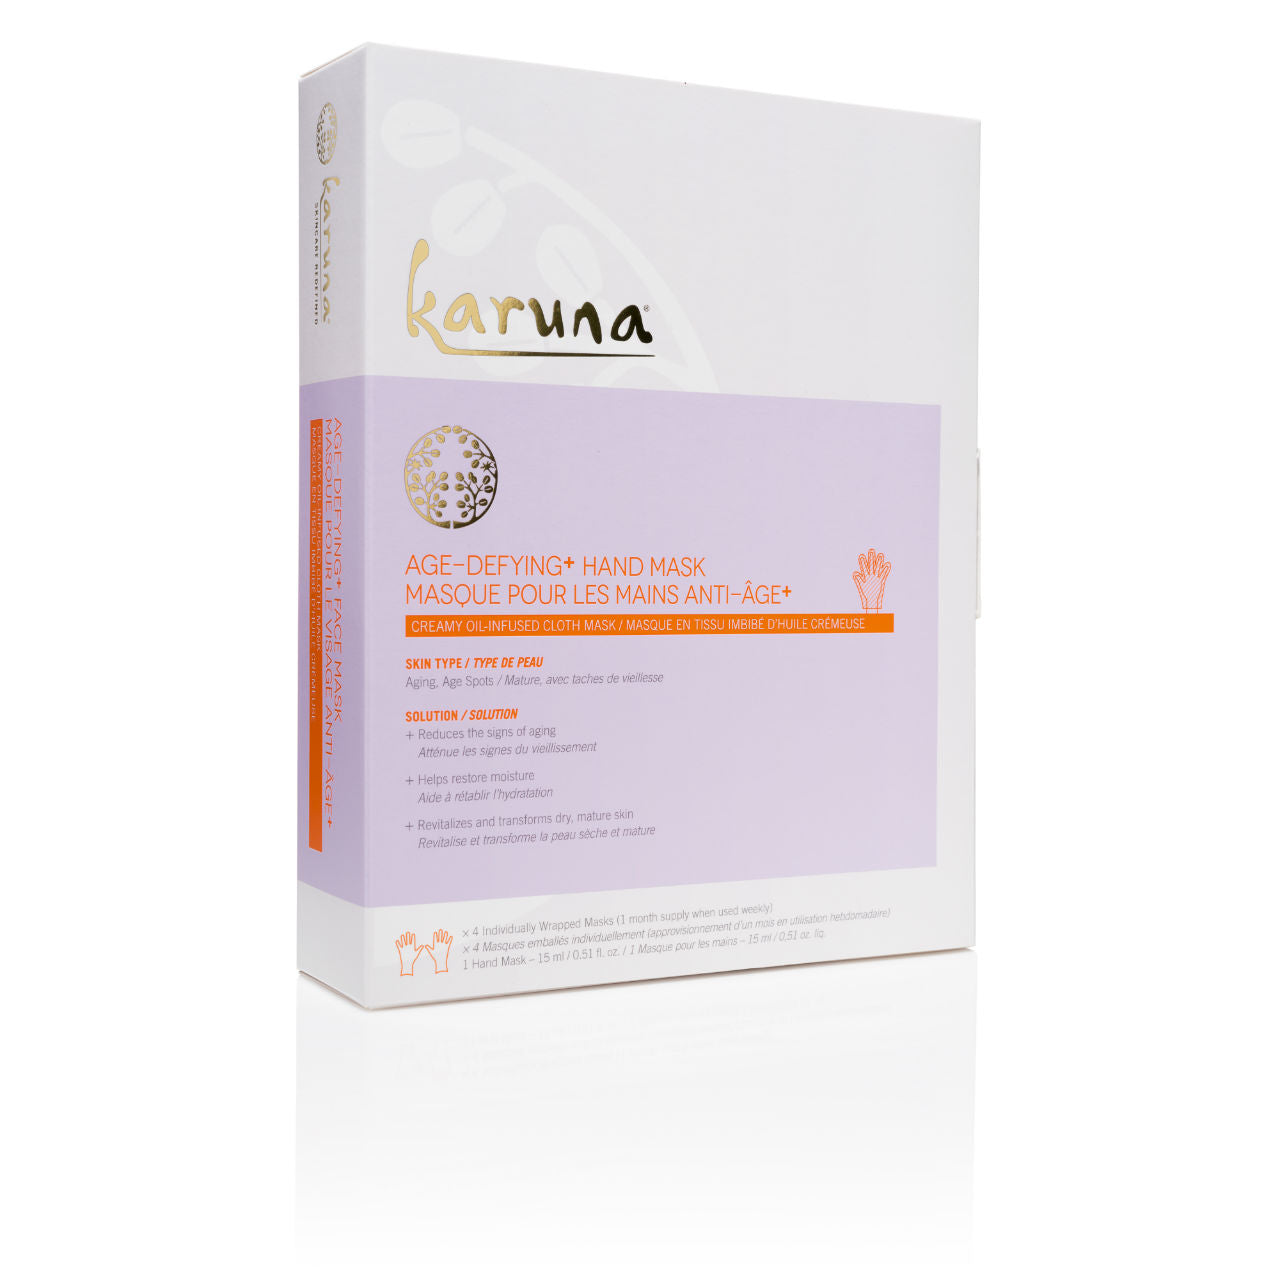 KARUNA Age-Defying+ Hand Mask Box